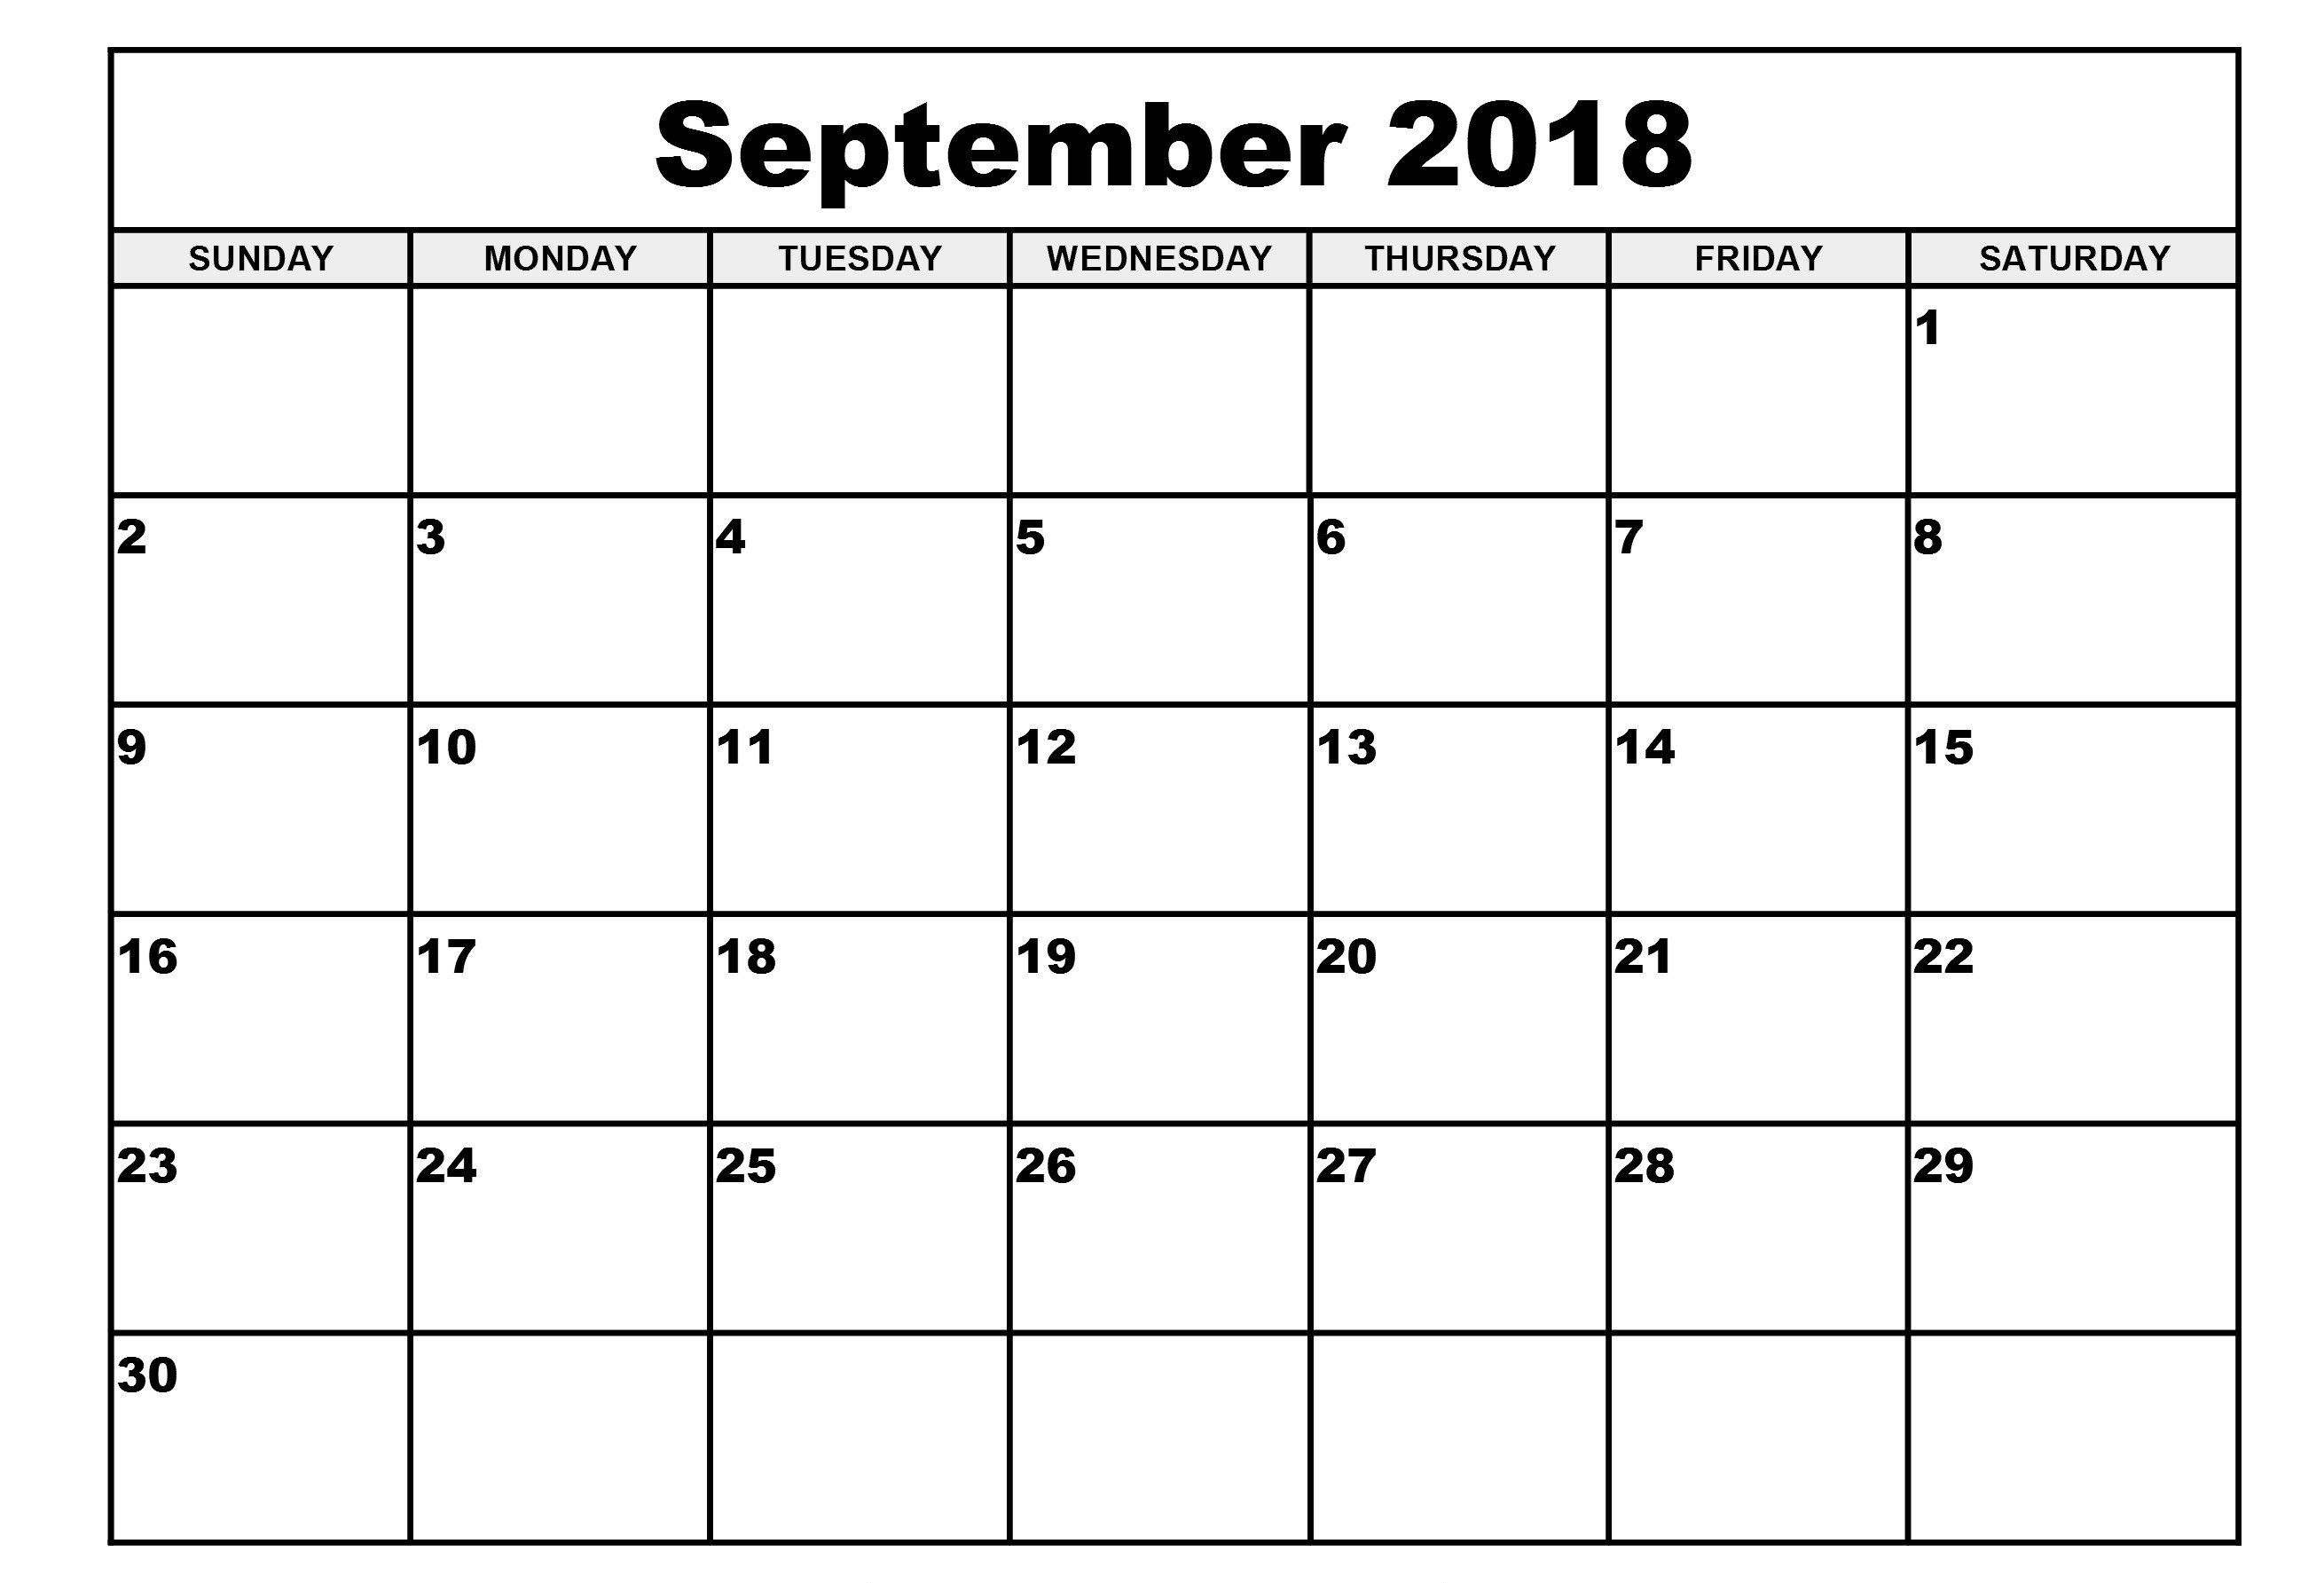 September 2018 Calendar Spanish Word Excel PDF